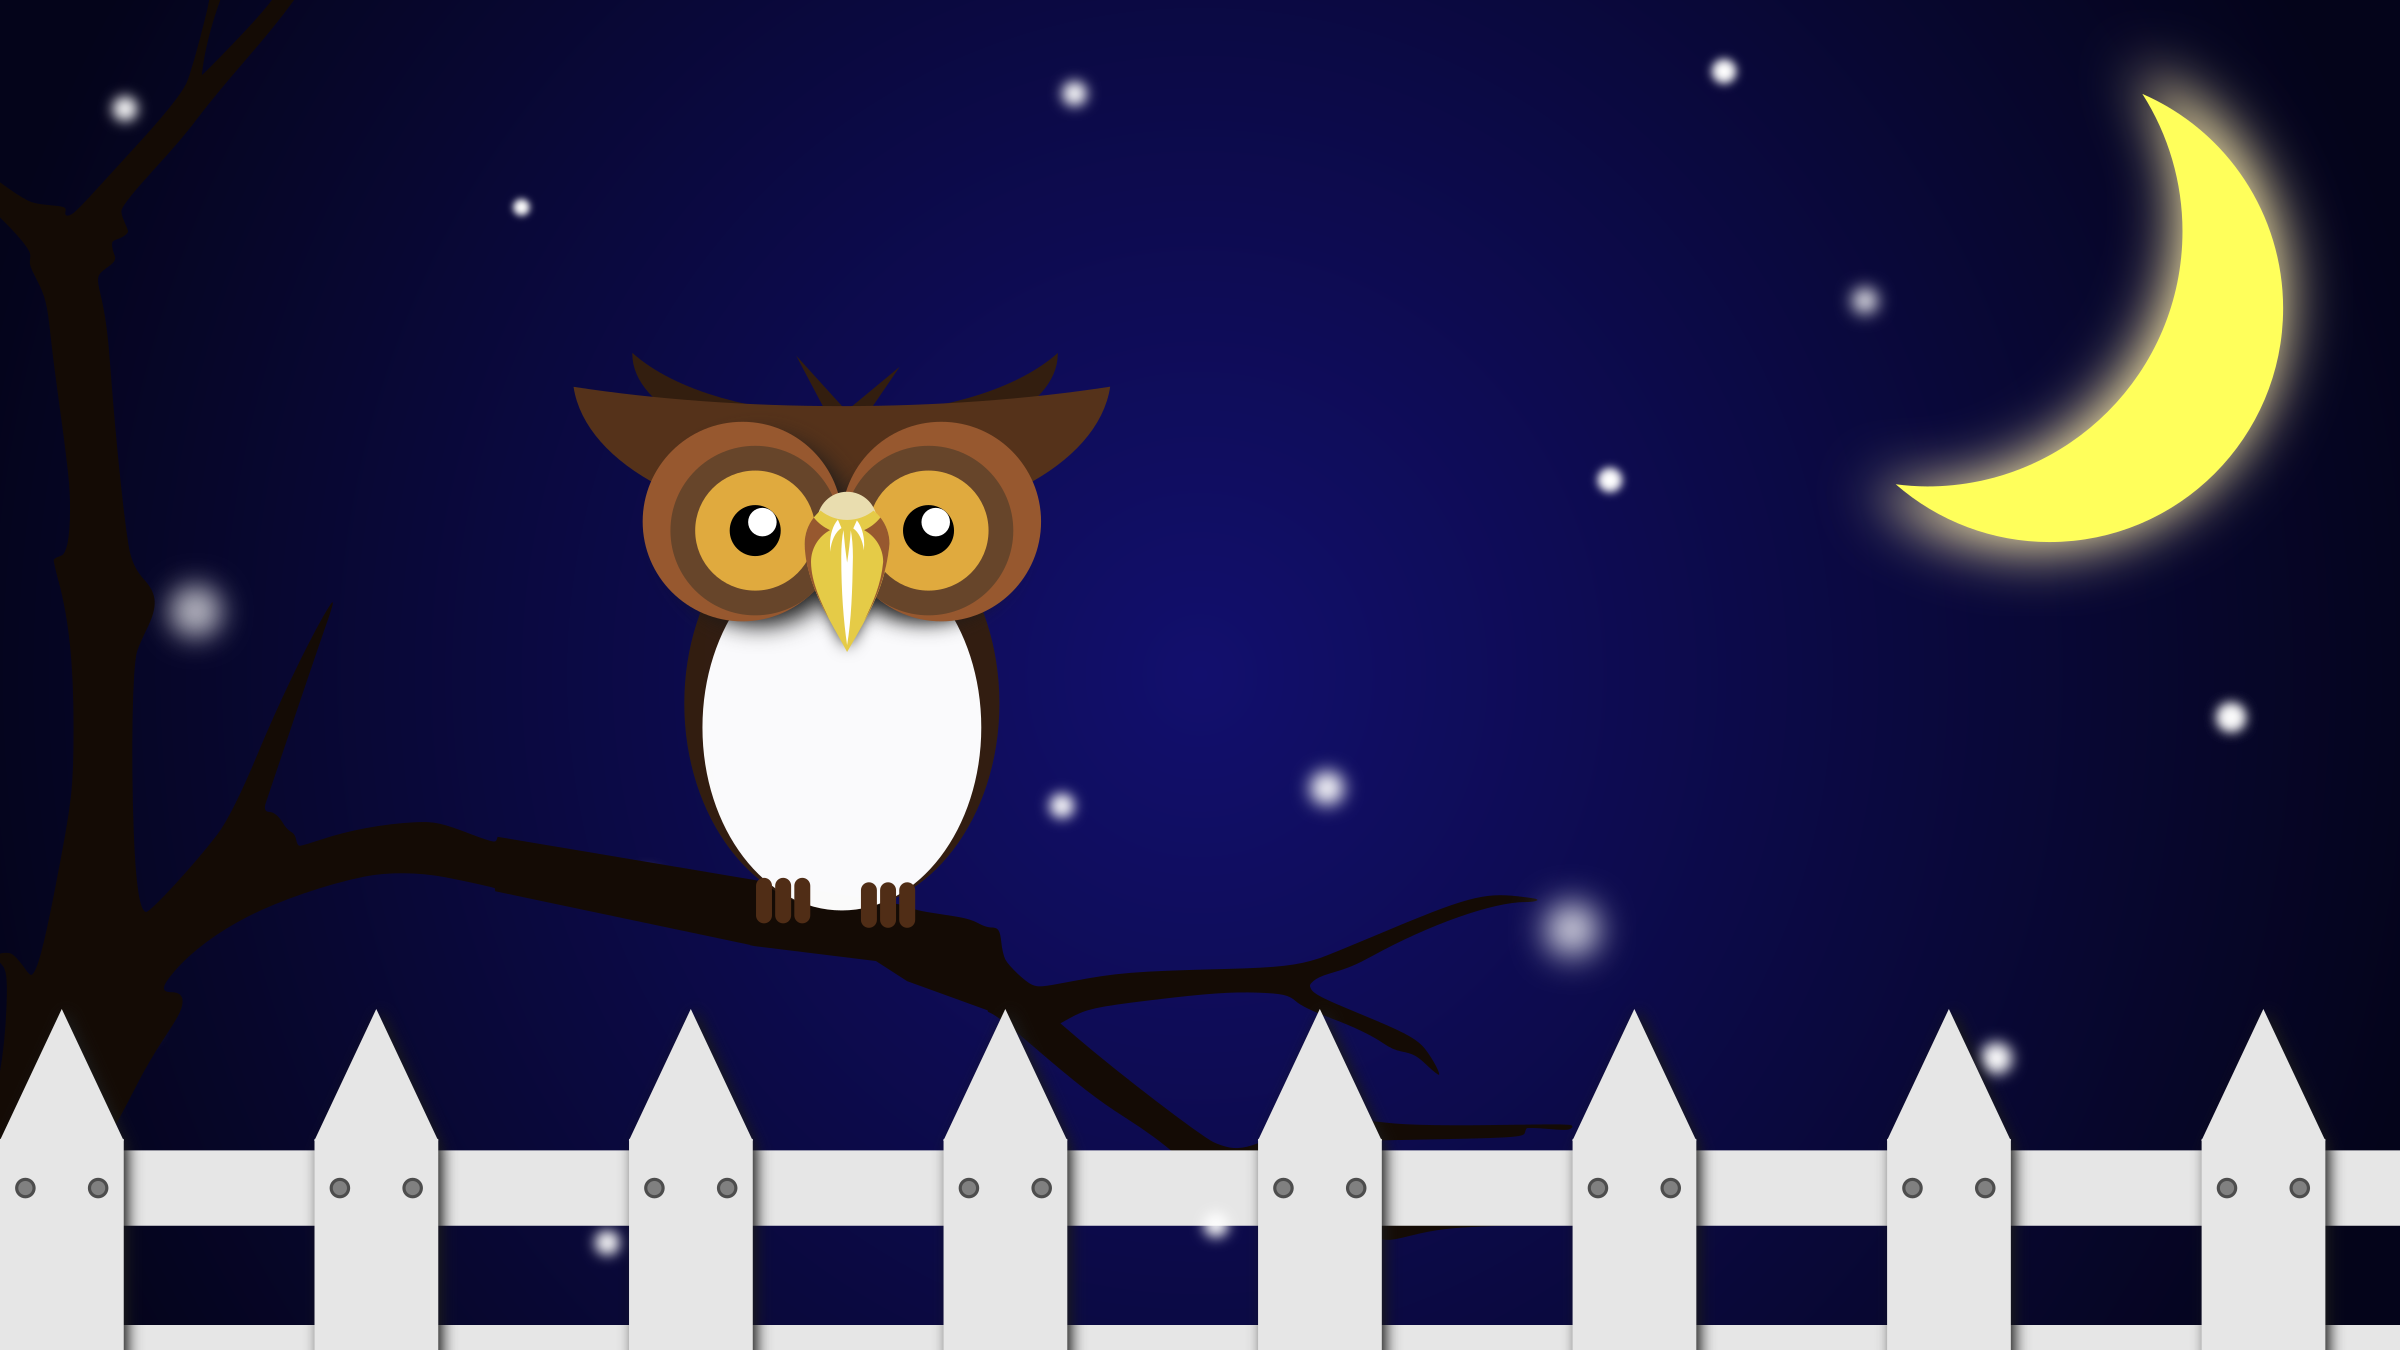 Night Owl Vector Clipart image.